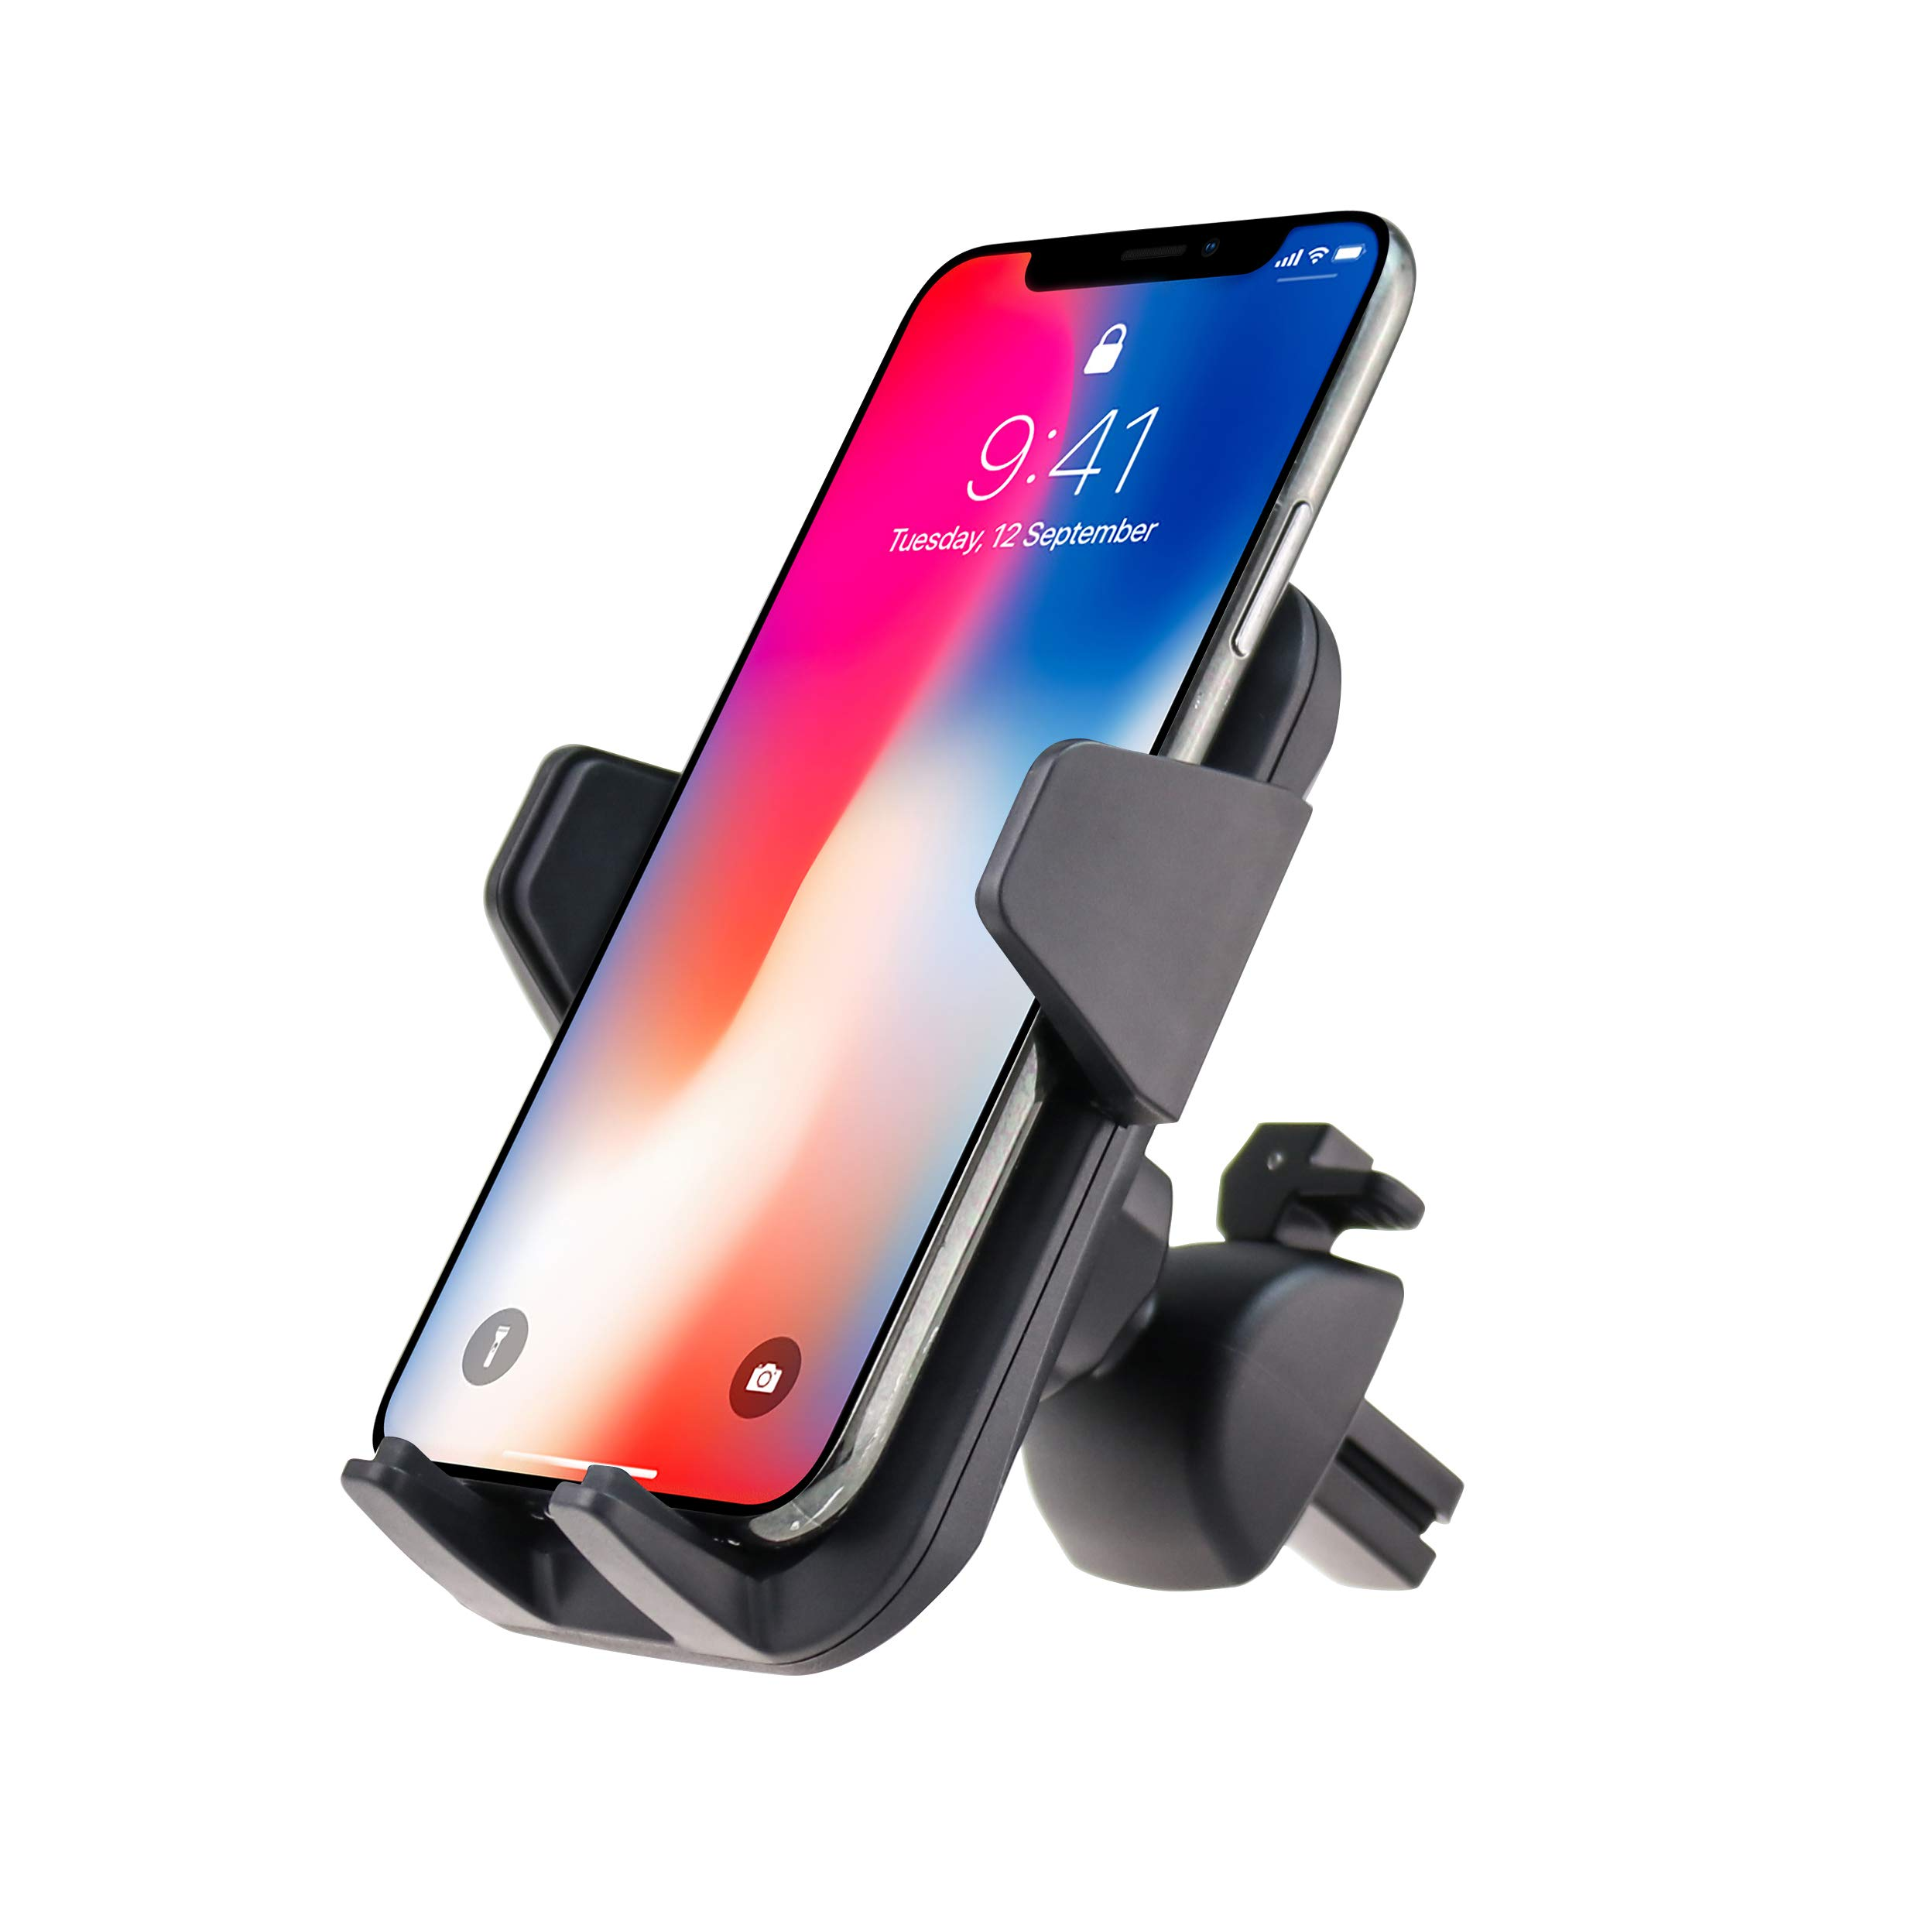 Fugetek Universal Smartphone Car Air Vent Holder, Adjustable Mount Cradle, One Touch Release, Durable, Compatible with iPhone XR/XS Max, XS/X, 8/8P, 7/7P, Galaxy S10,S9,S8, HTC, Google (Grey) by Fugetek